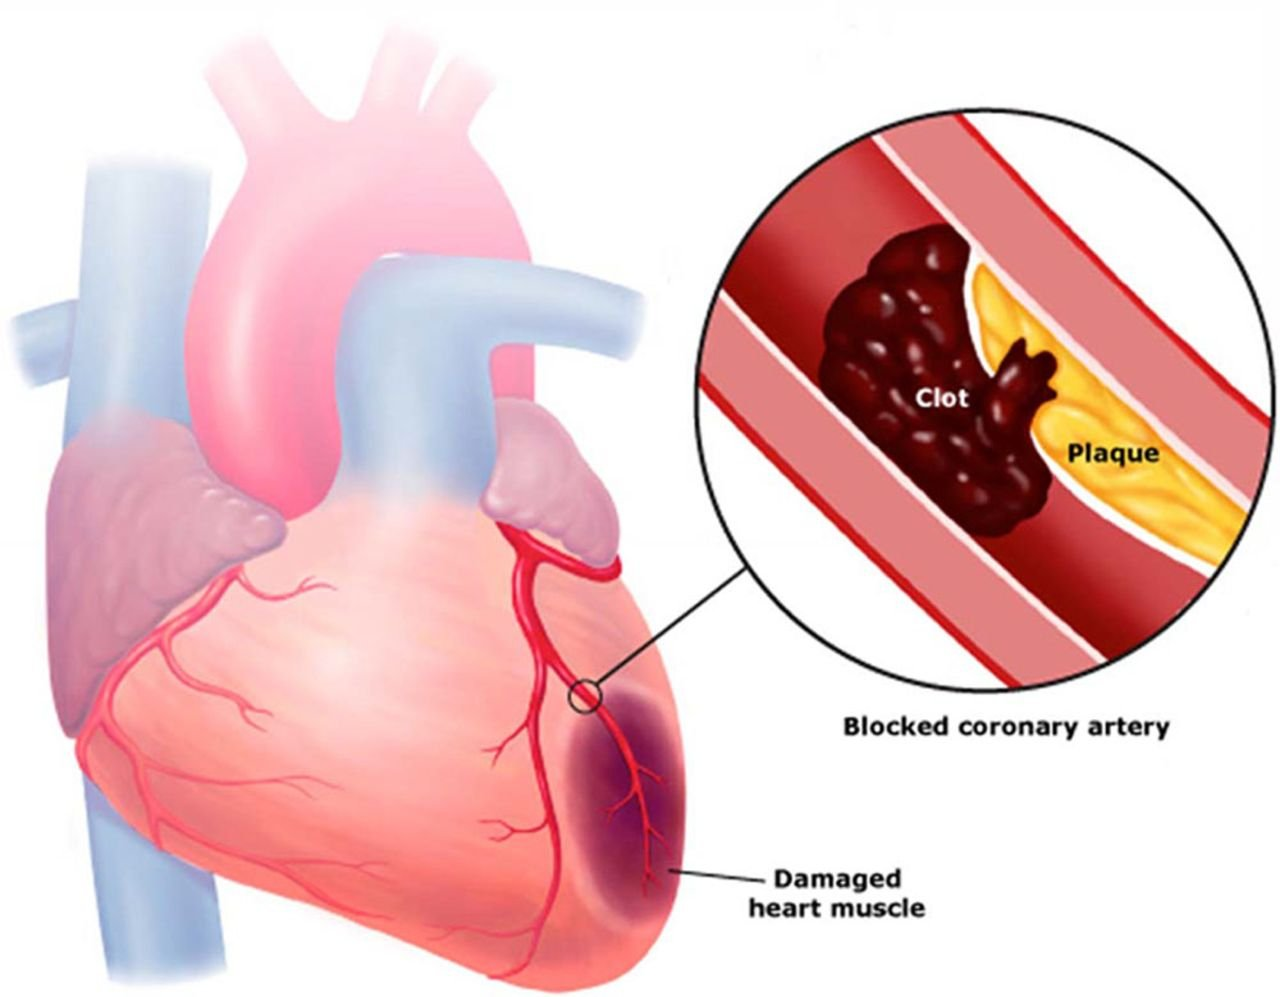 Clotting in heart